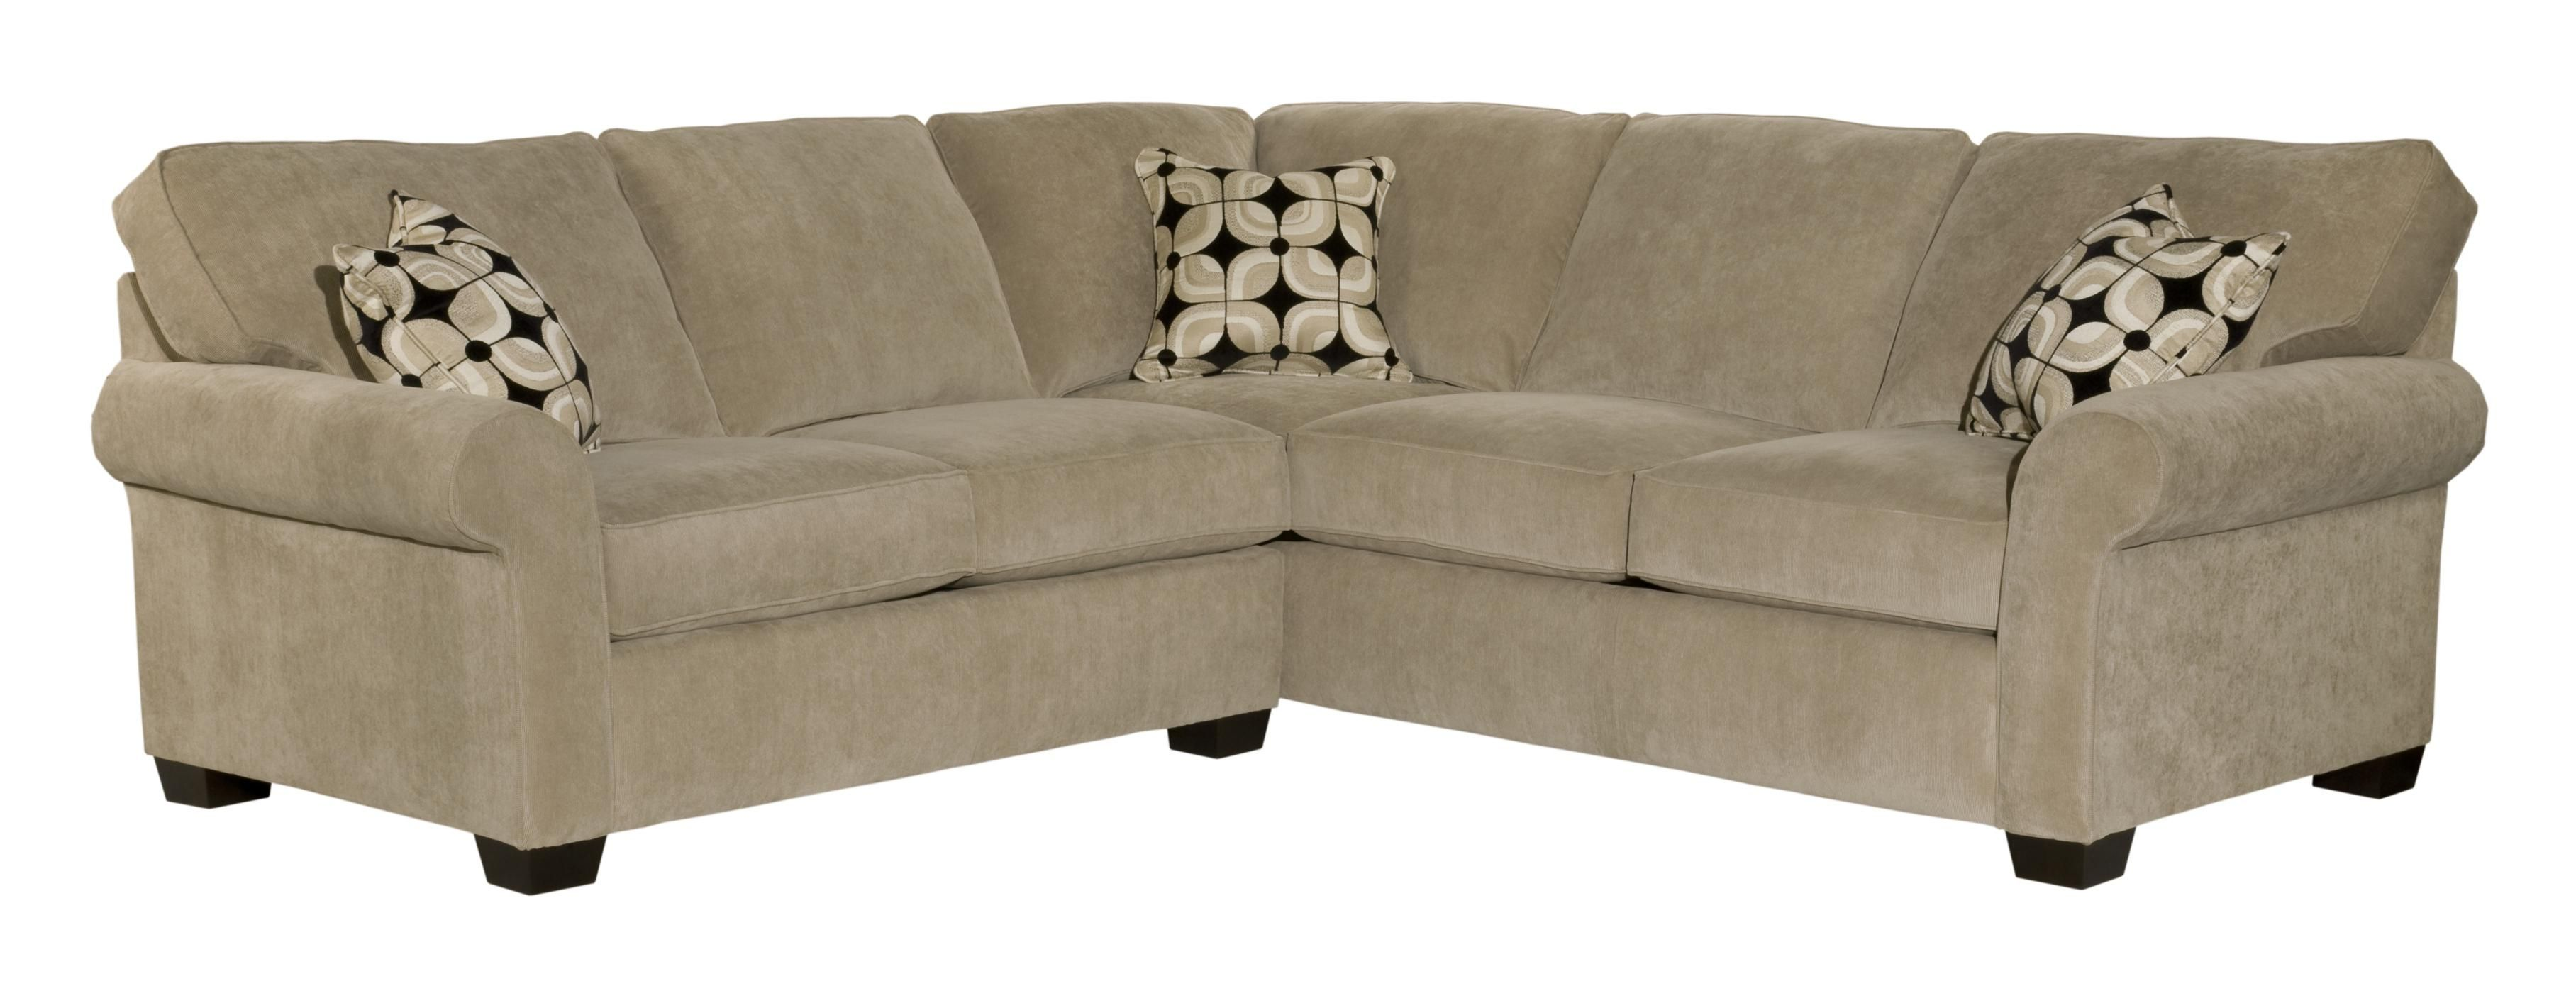 Ethan Two Piece Sectional by Broyhill Furniture HudsonsFurniture